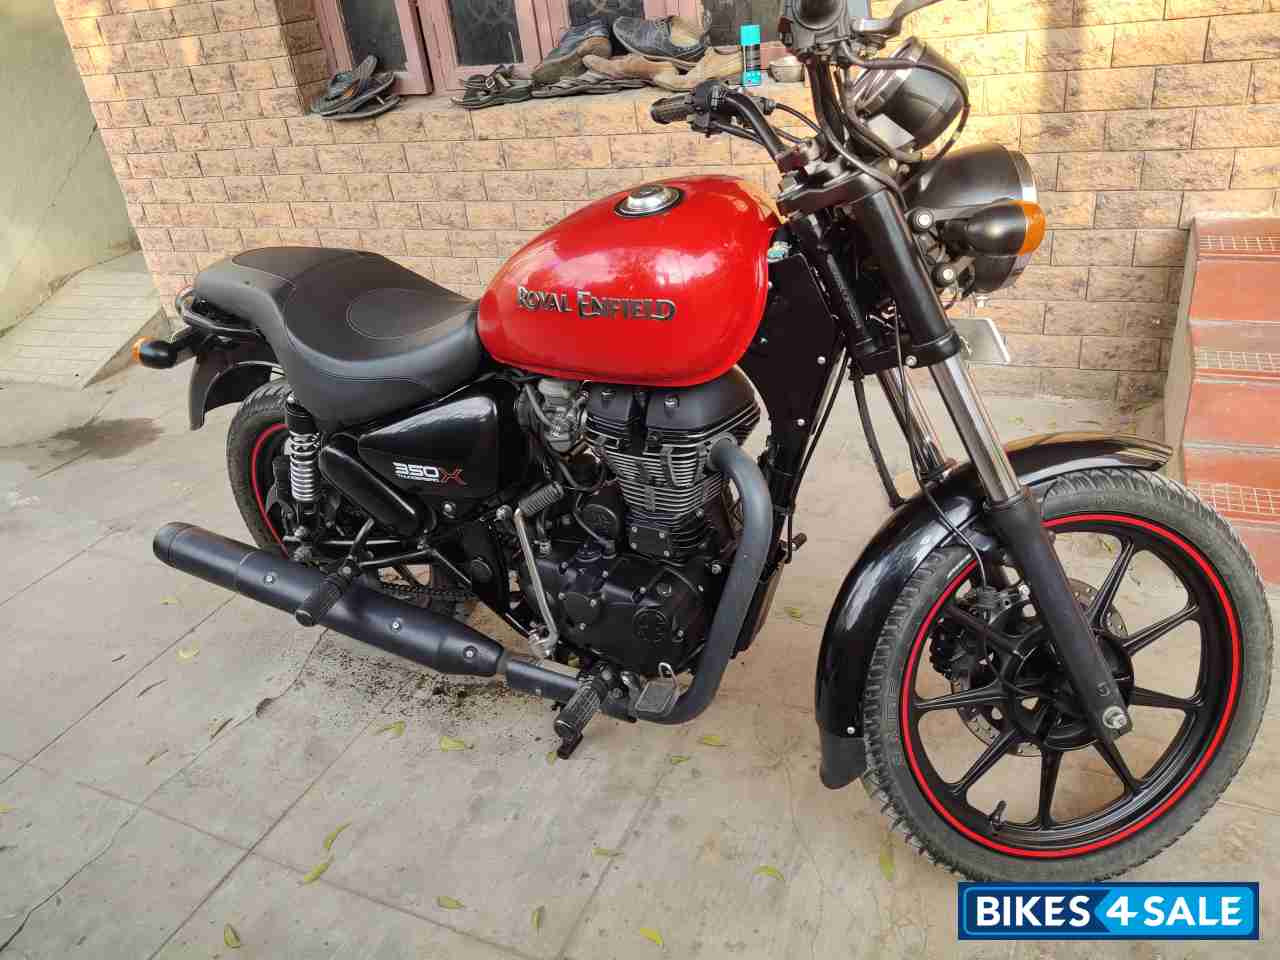 Royal Enfield Thunderbird X 350